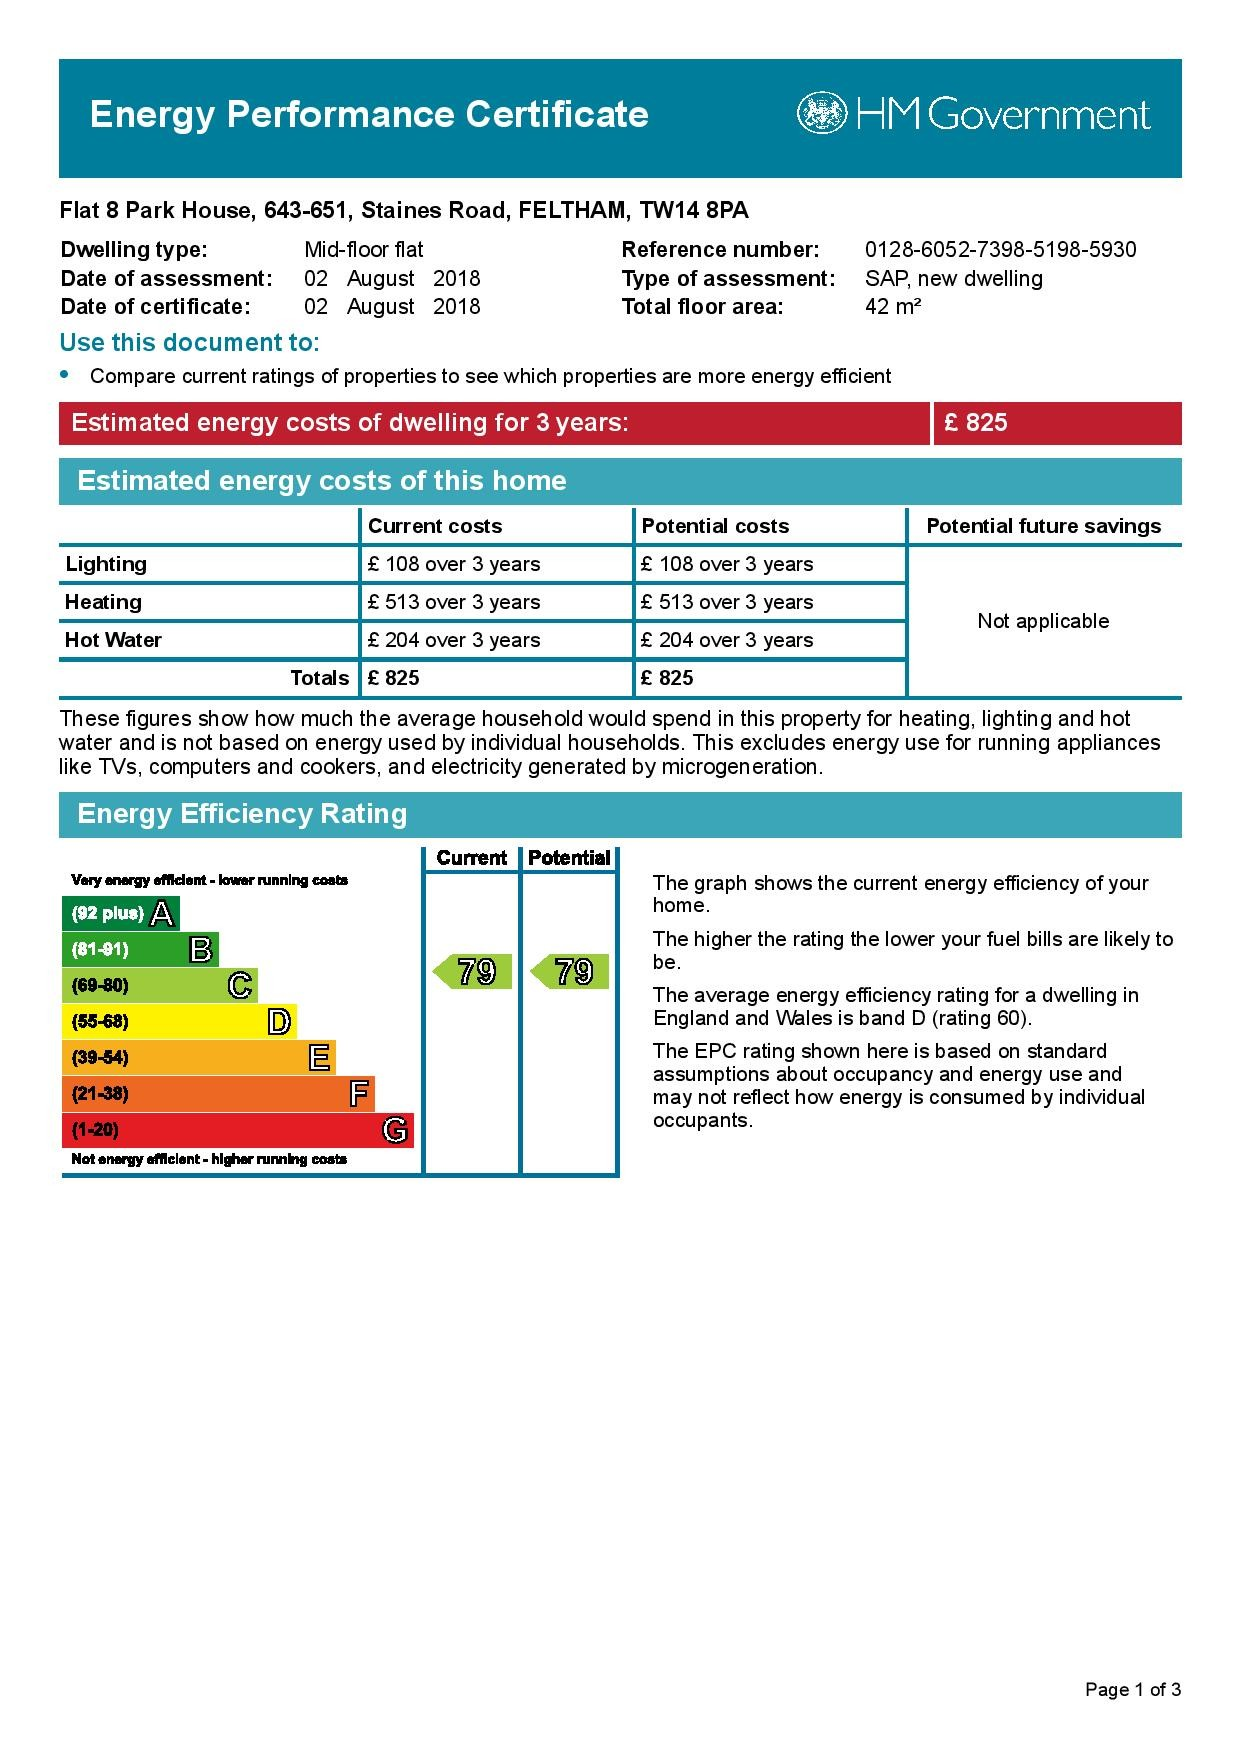 EPC Graph for Flat 8 Park House, Staines Road, Bedfont, Middlesex TW14 8PA